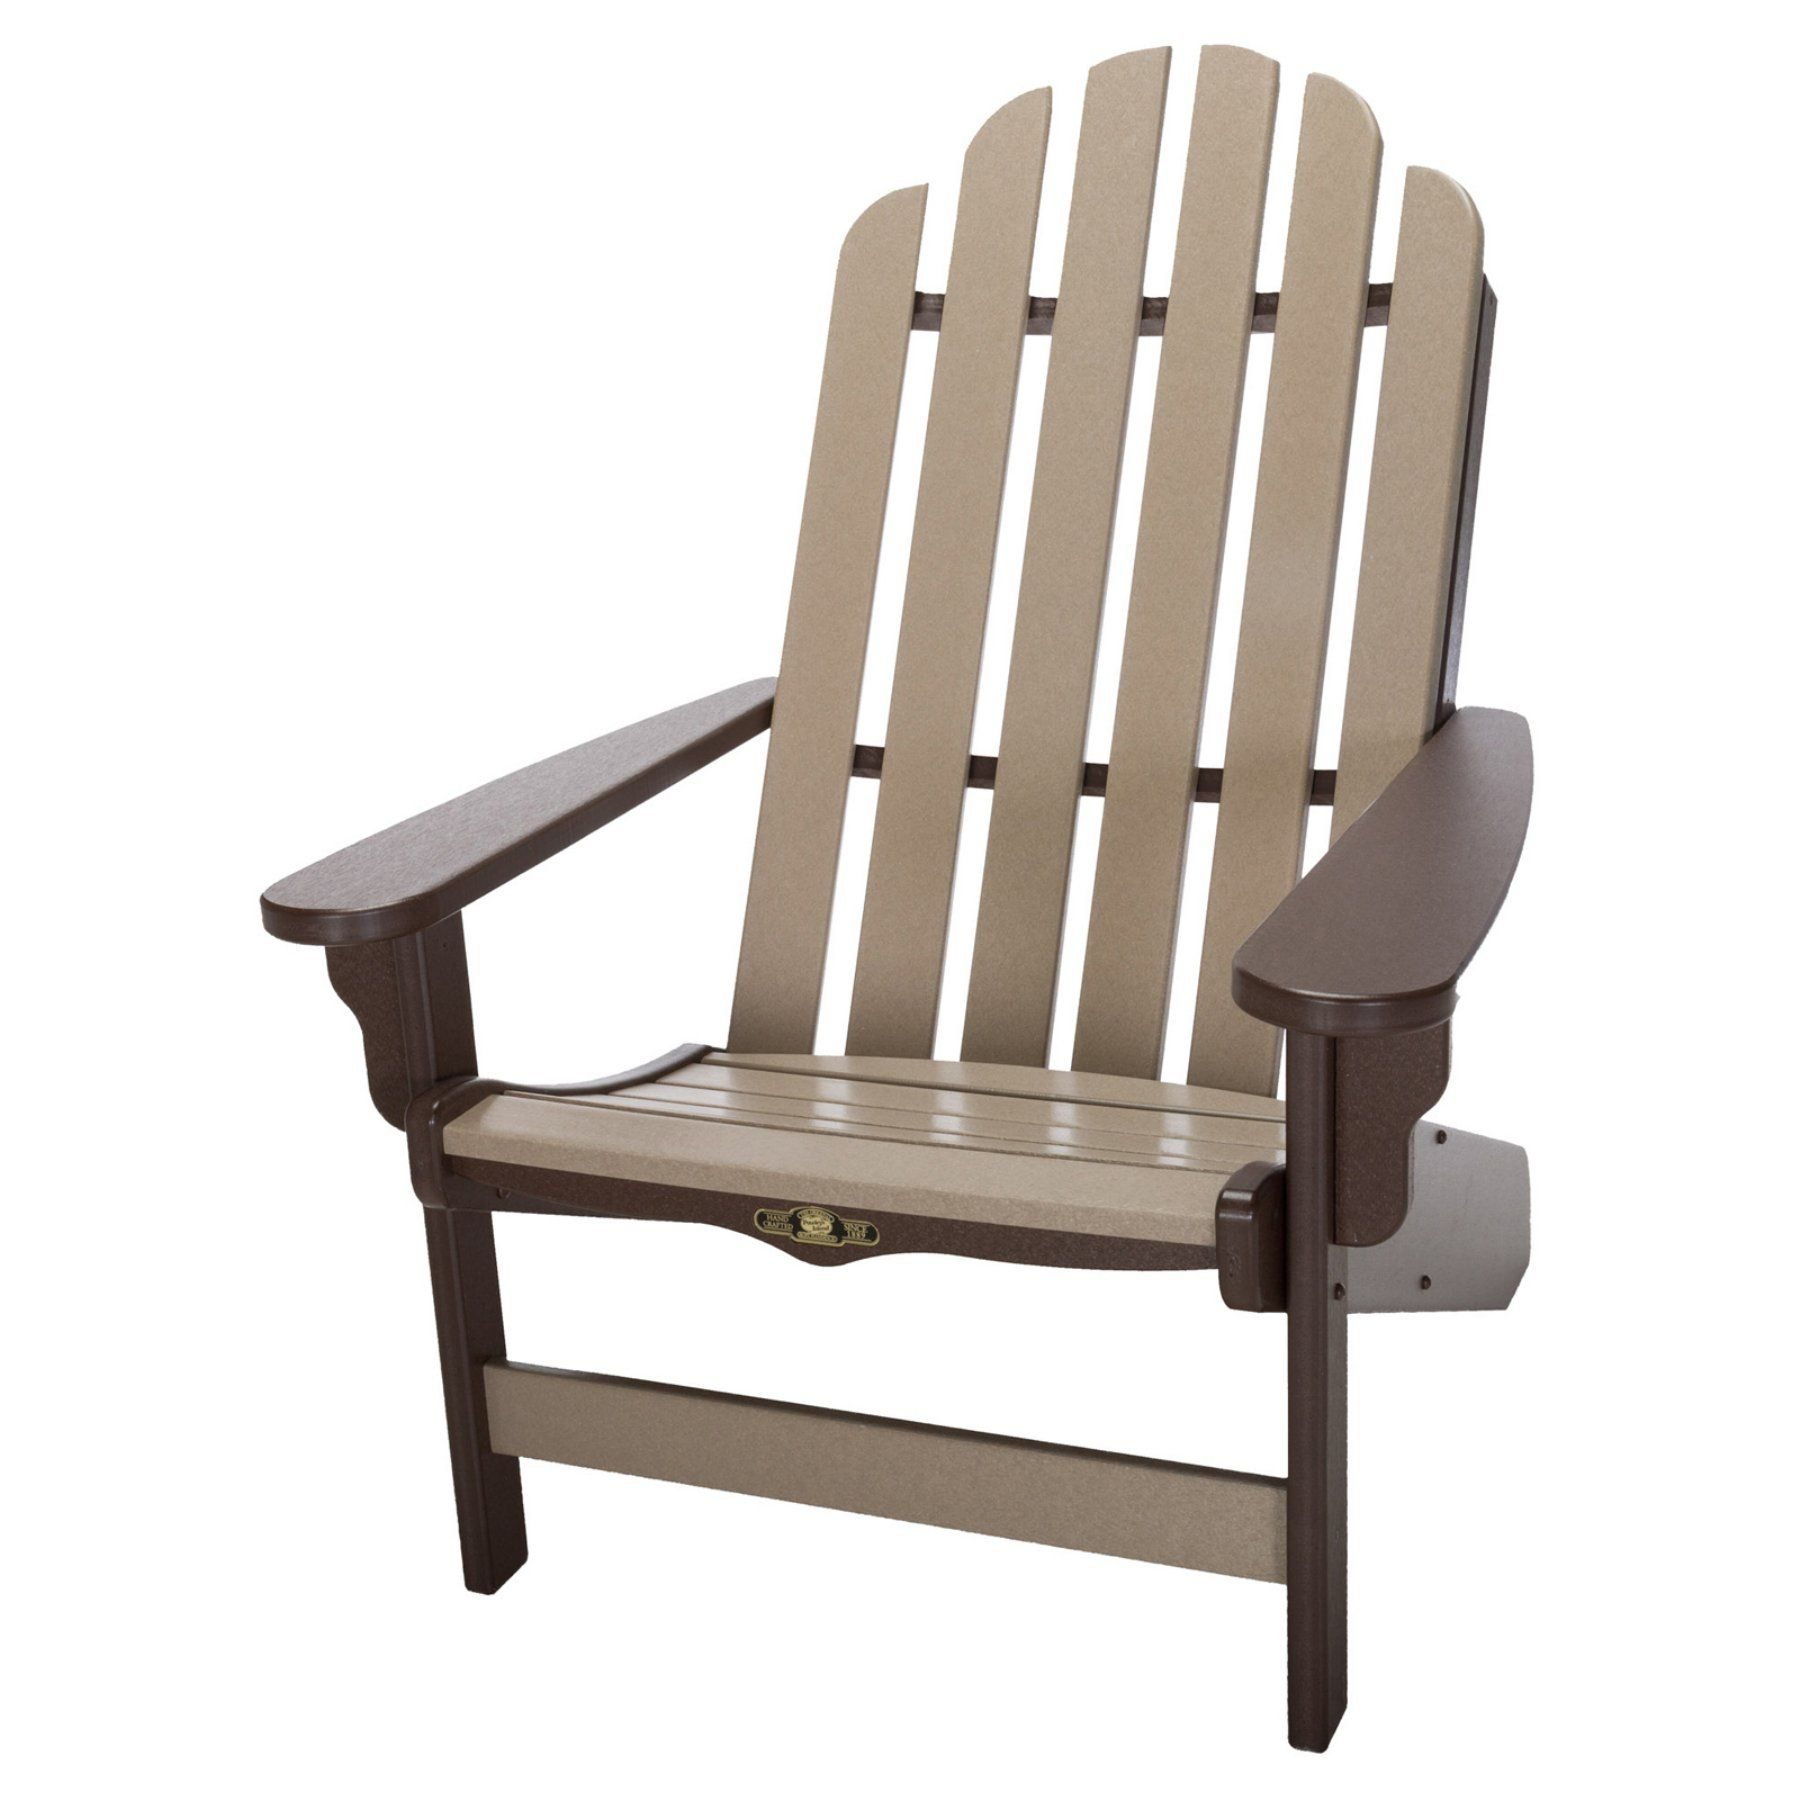 Outdoor Pawleys Island Essentials Two Toned Adirondack Chair - DWAC1CHOWW